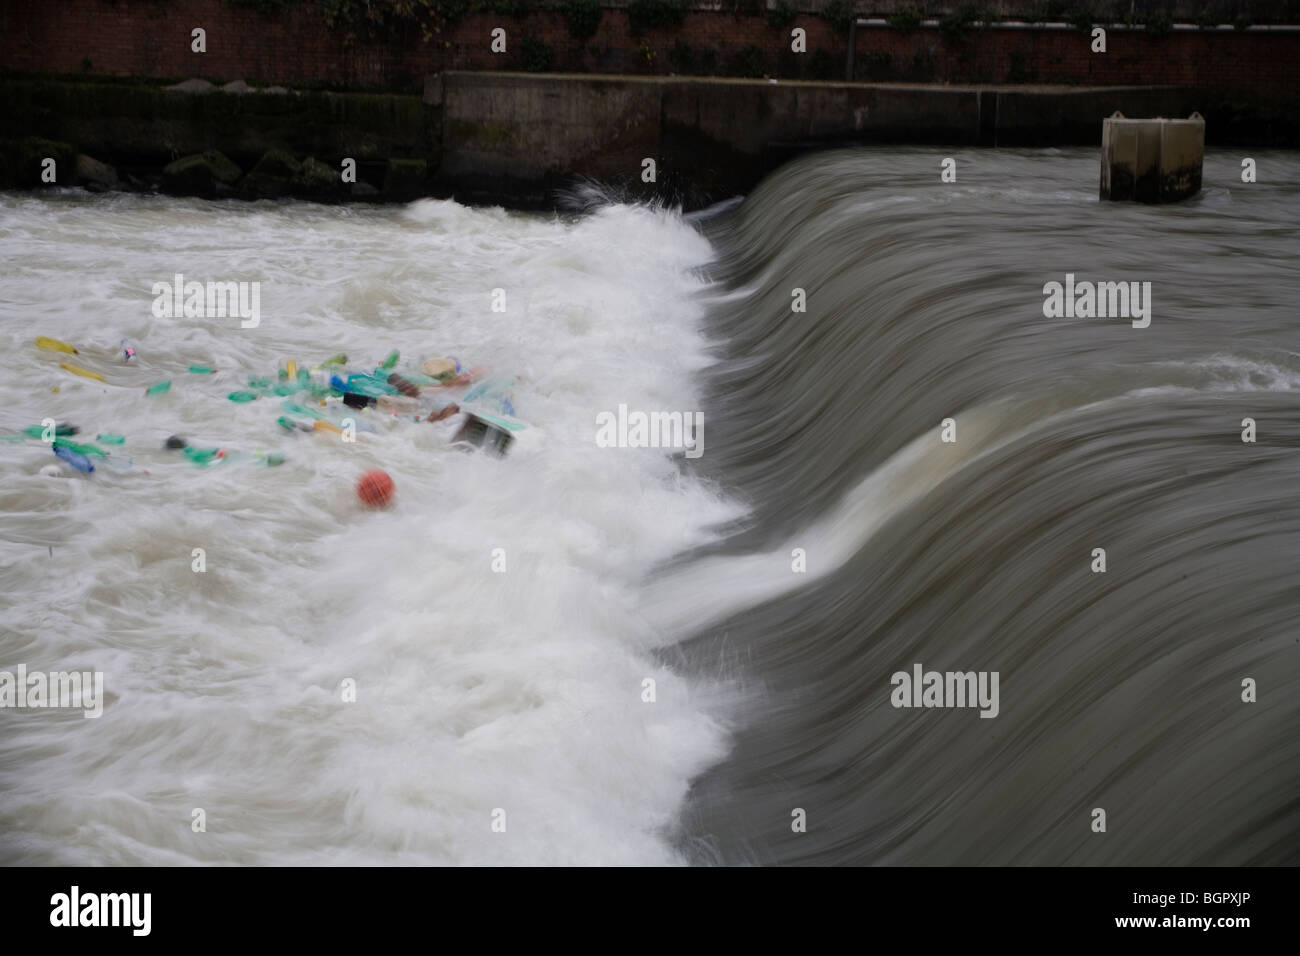 Plastic bottles and garbage floating on the River Tevere, Rome, Italy. - Stock Image